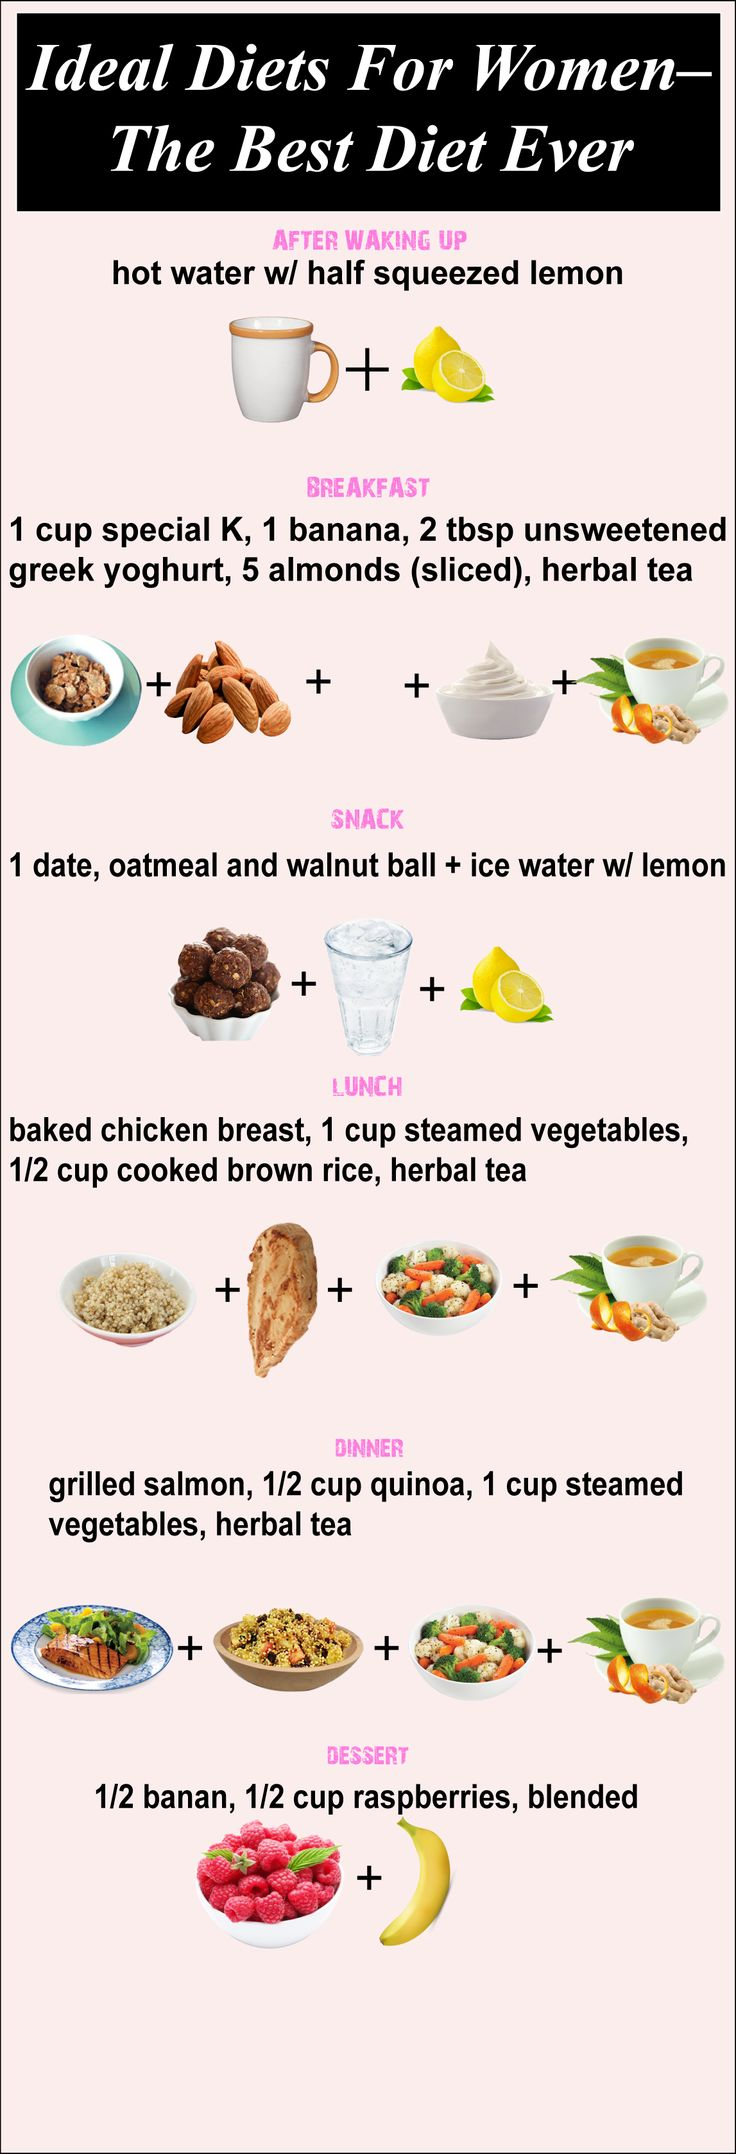 What is considered an ideal diet? If you are looking for an ideal diet for women discover six best diets for women- The Best diet ever !